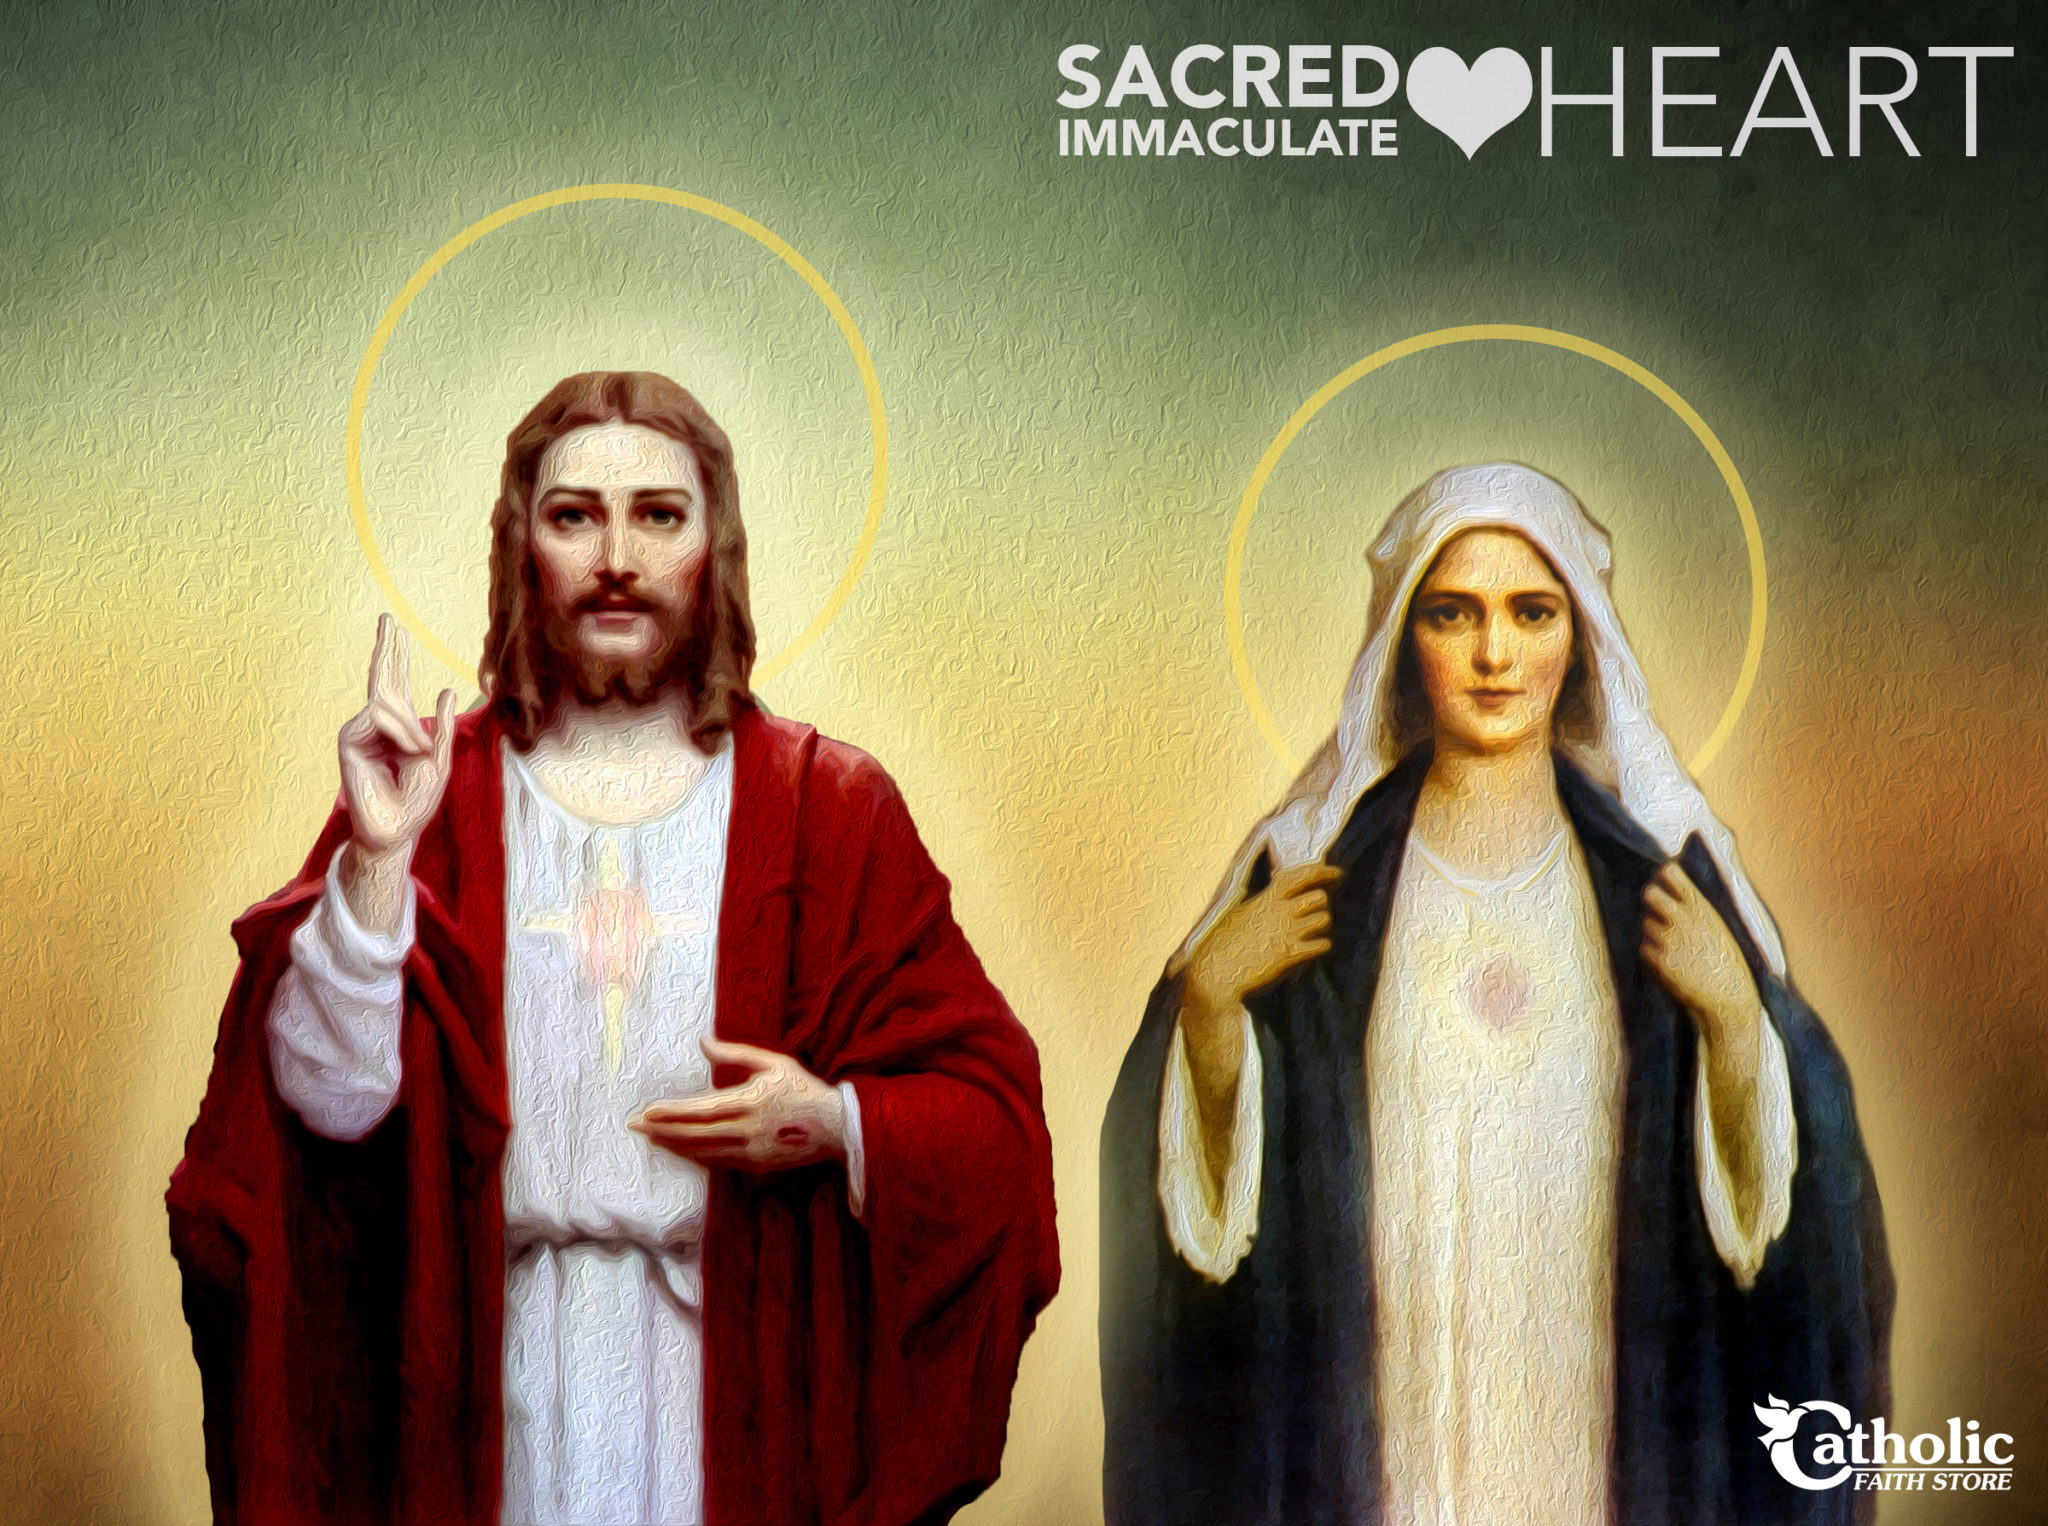 Sacred Heart — Immaculate Heart